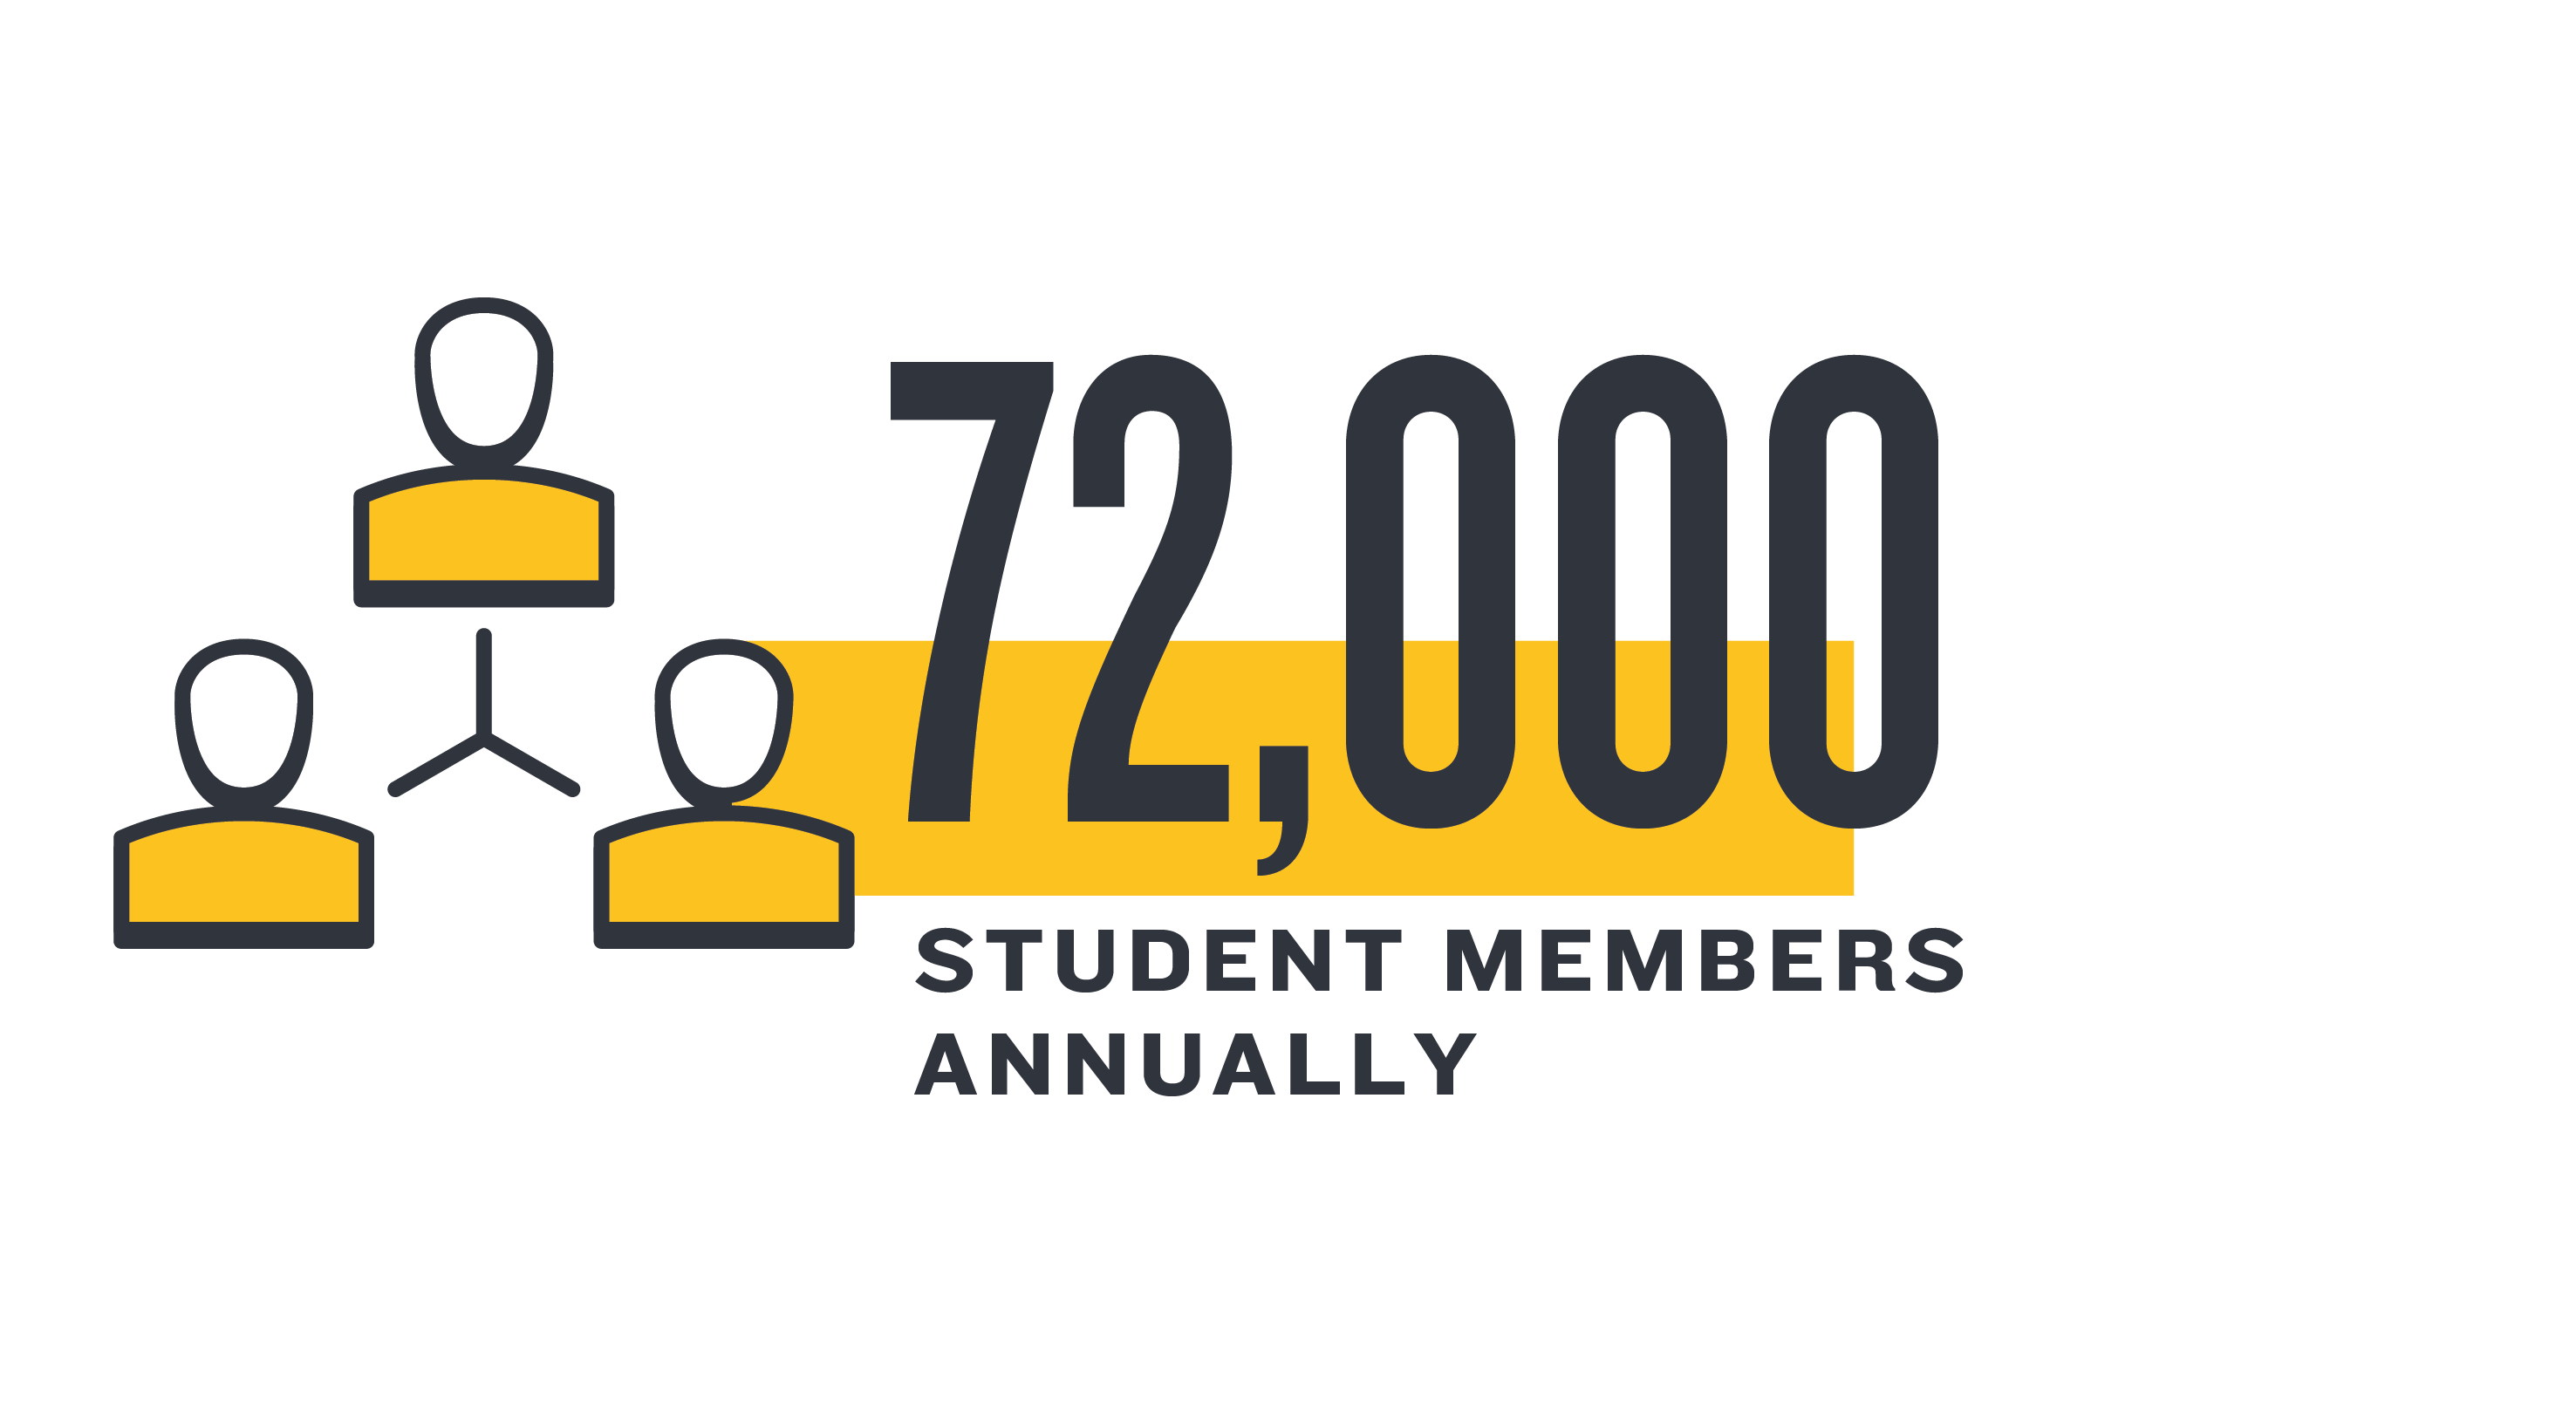 72,000 Participating Students